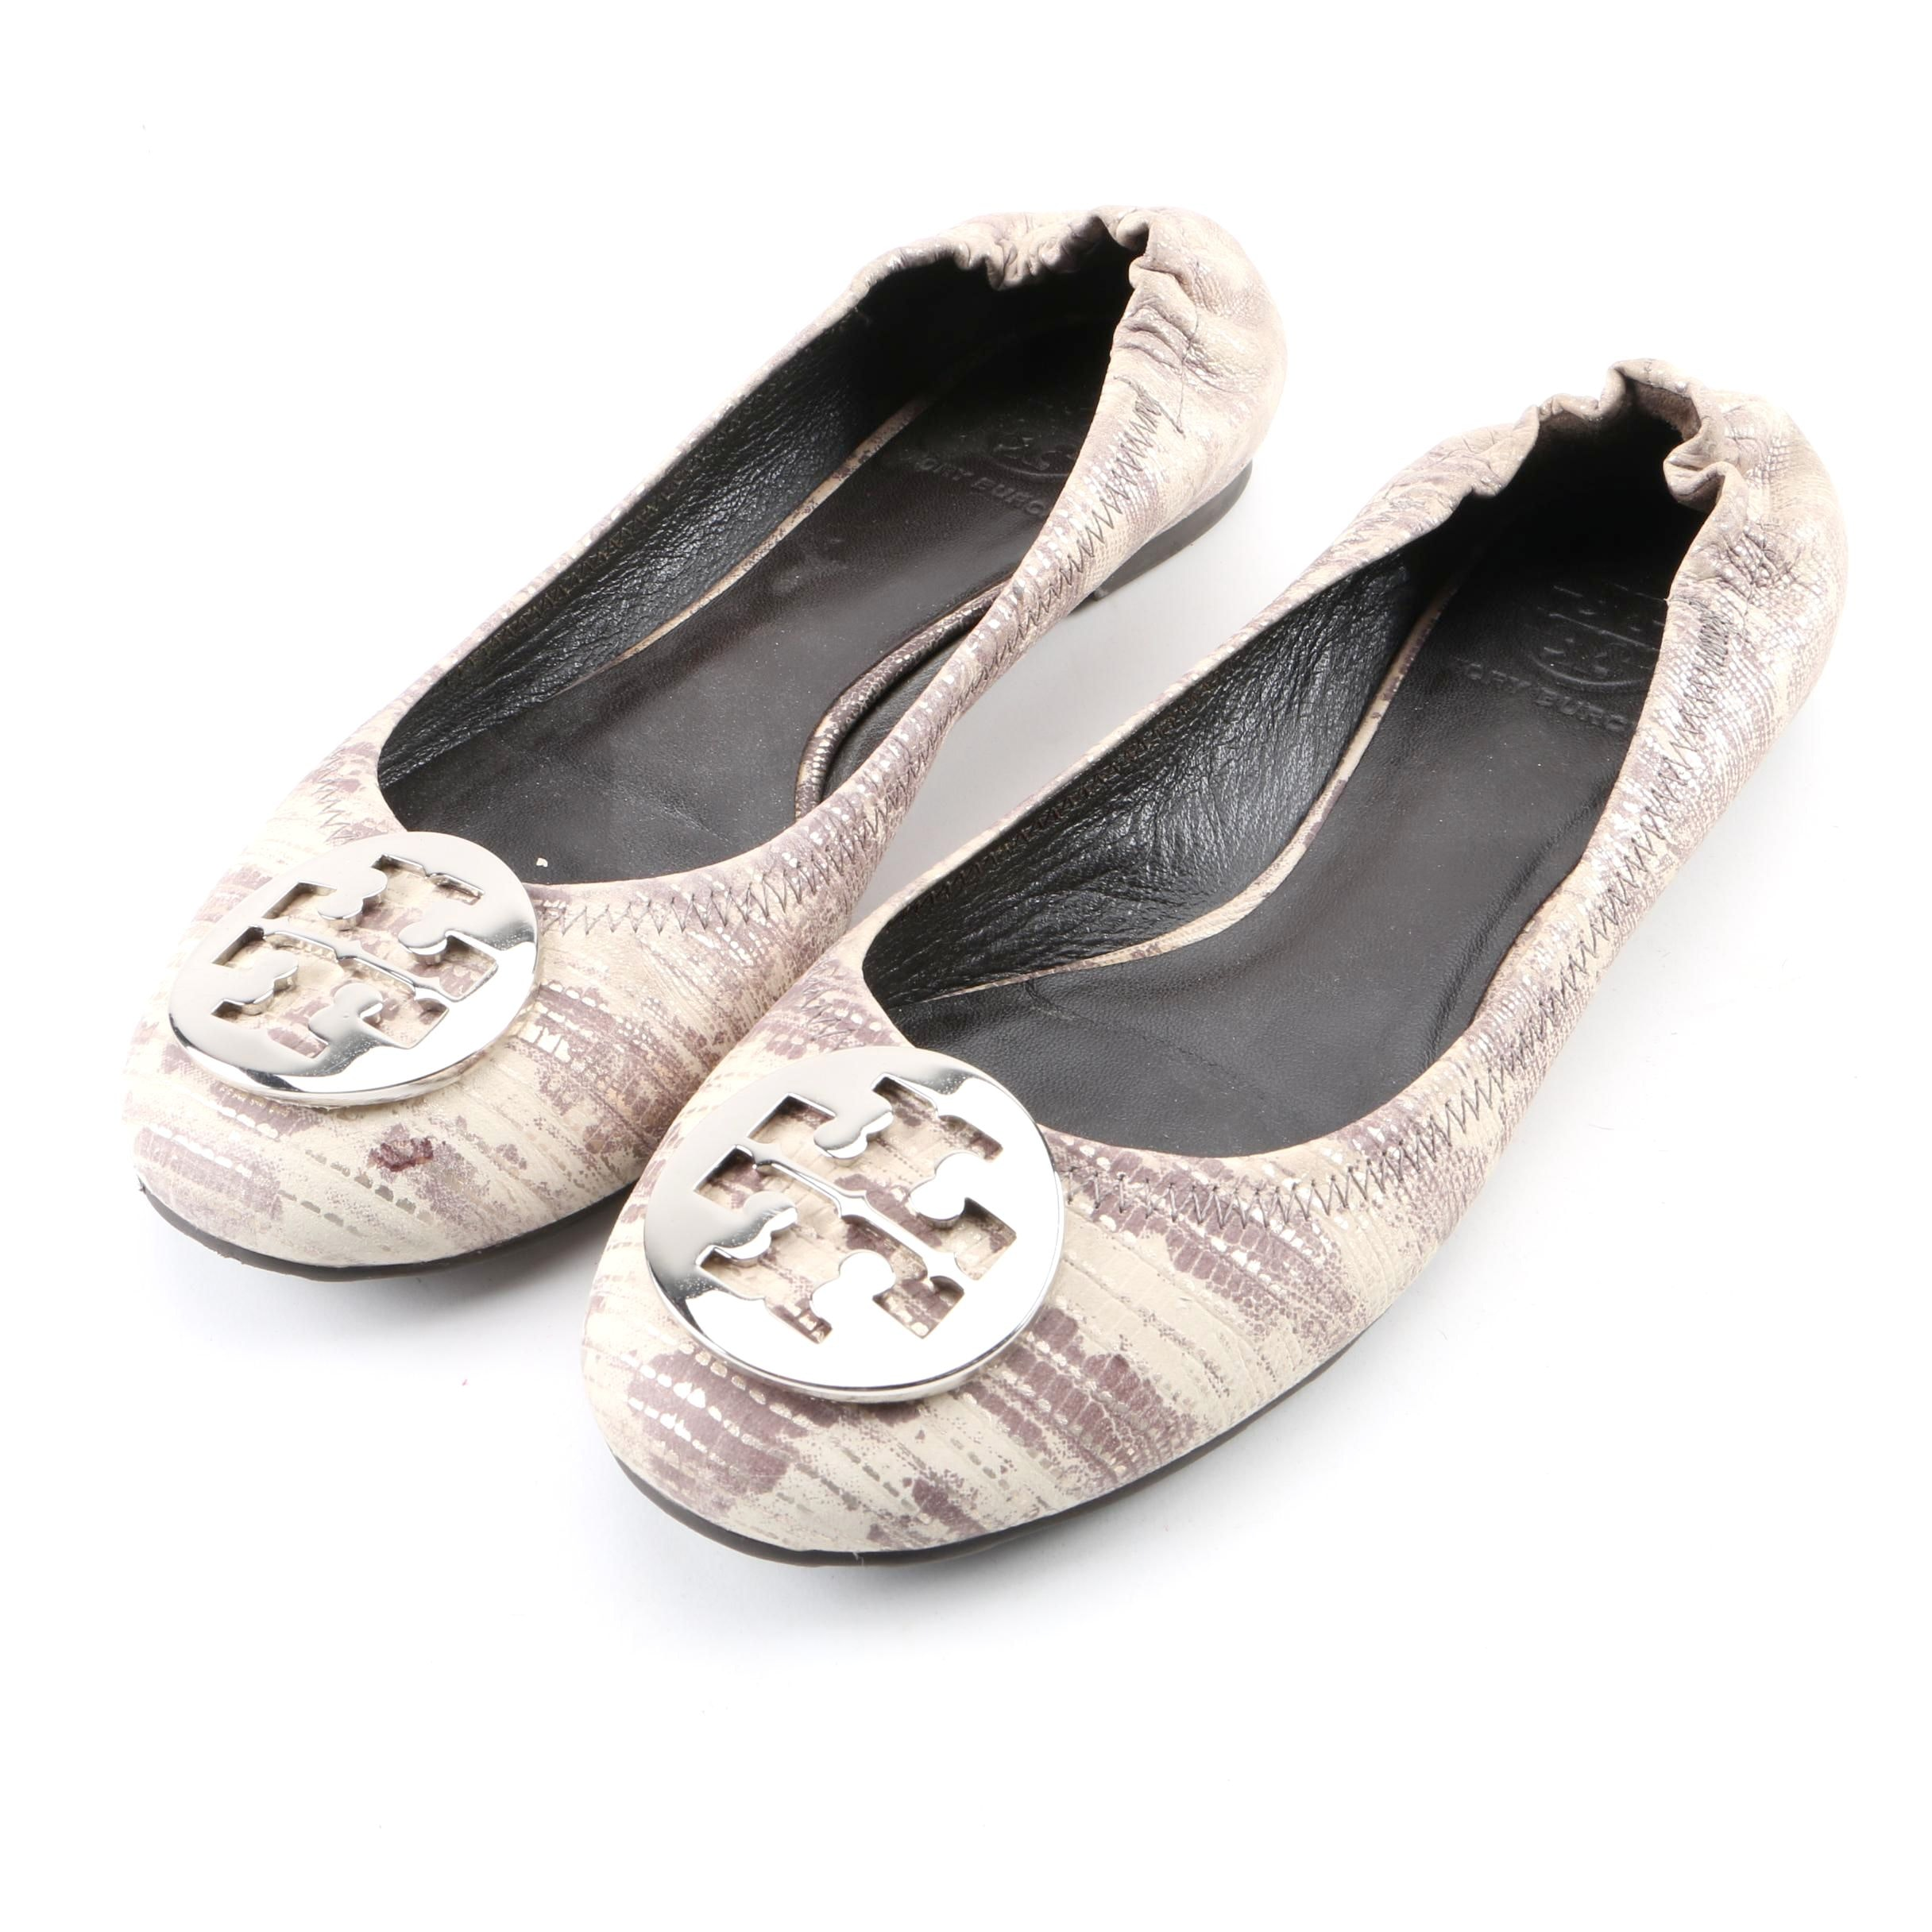 Tory Burch Cream and Taupe Embossed Leather Ballet Flats